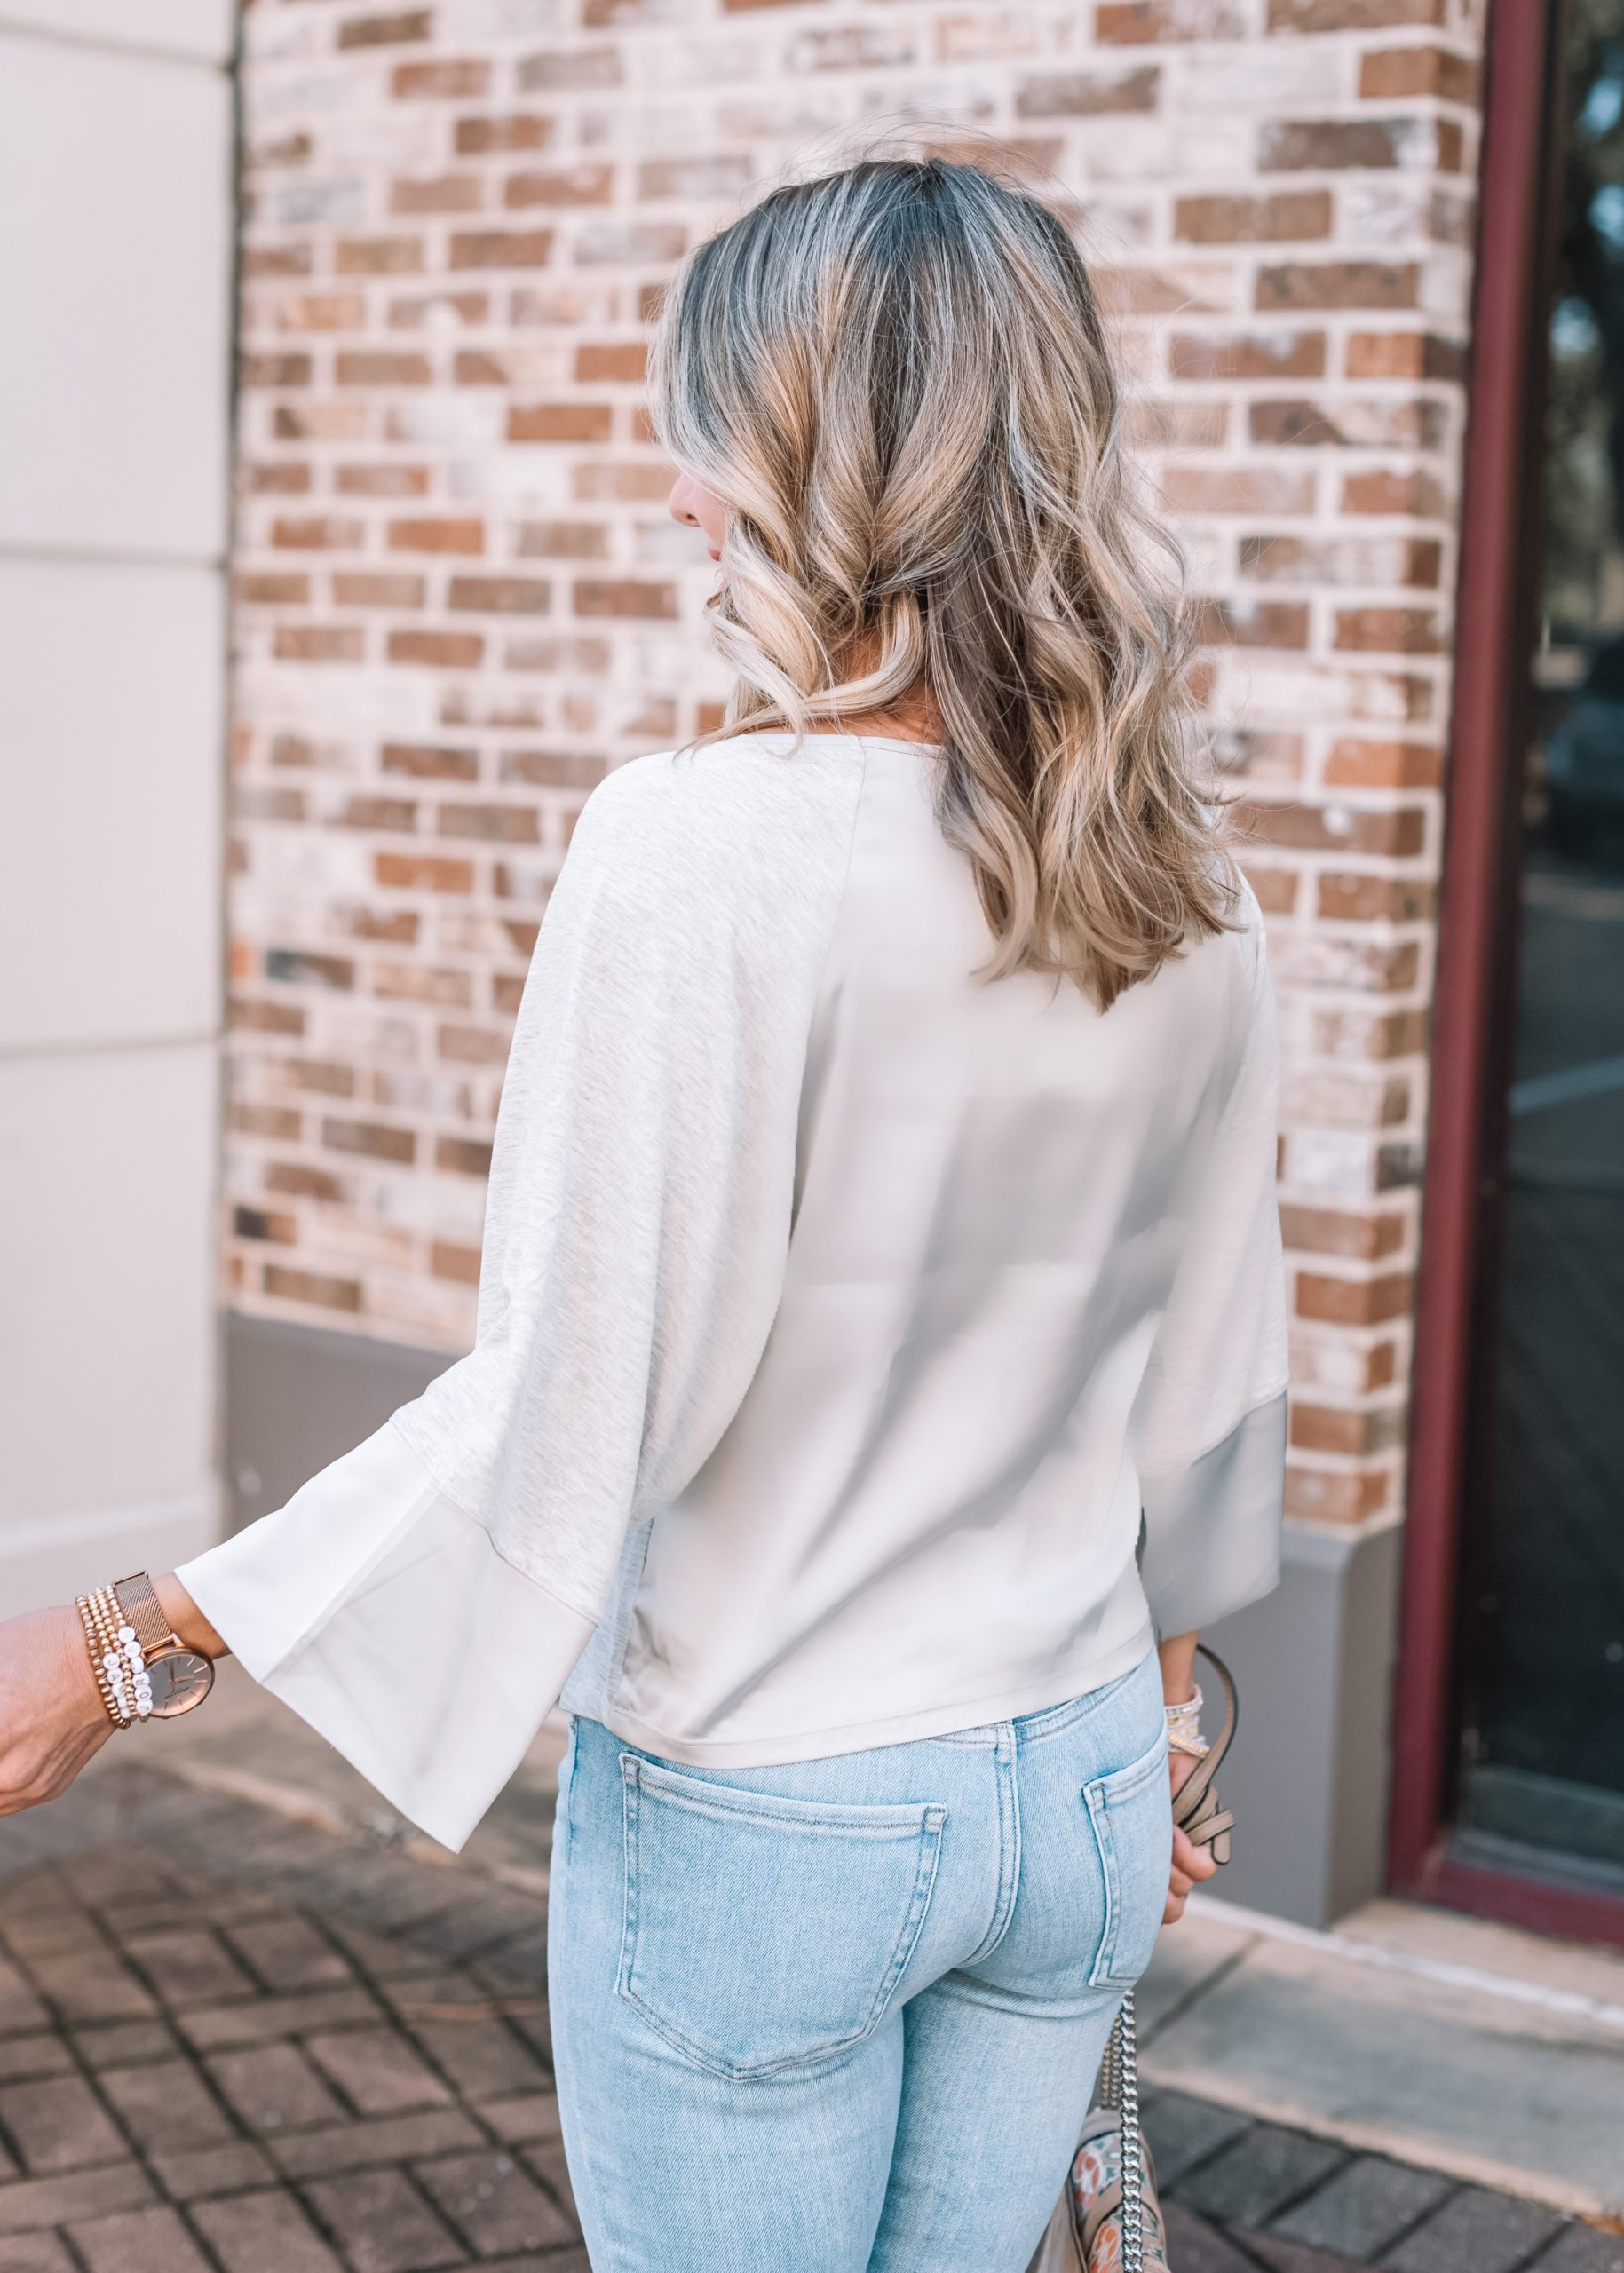 Express Fashion, Grey Tee, Skinny Jeans